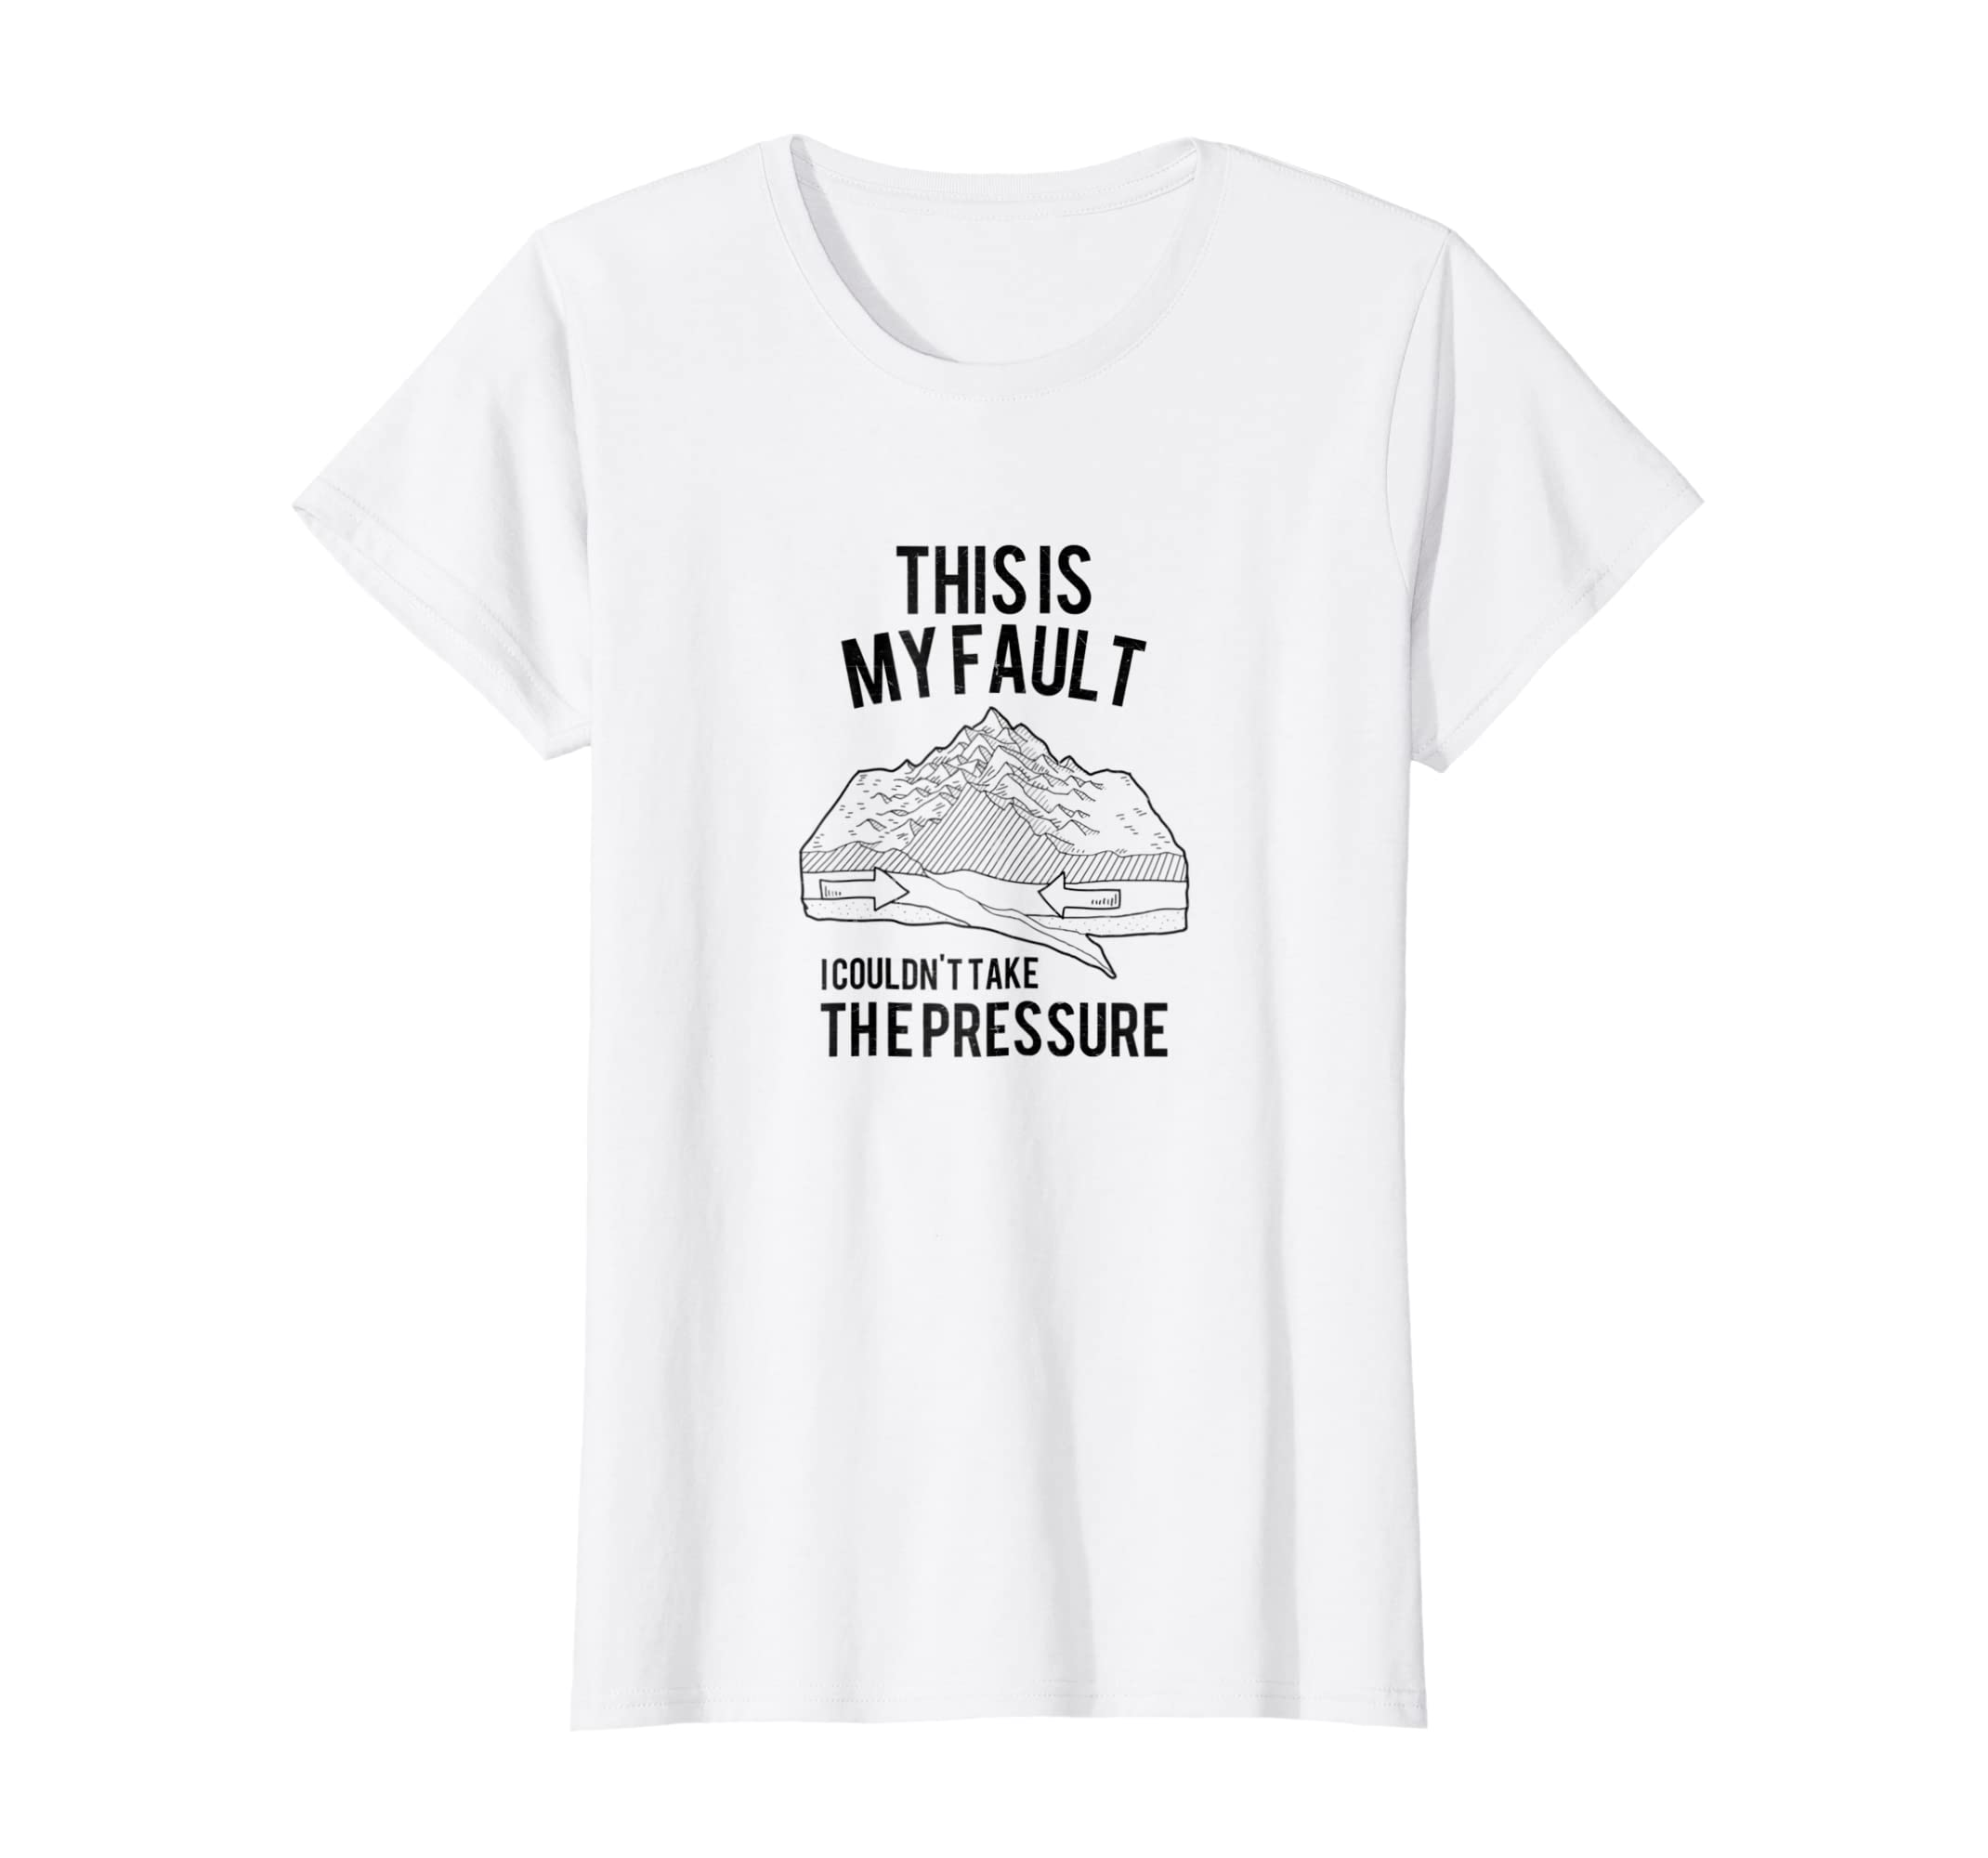 e2a435c7 Amazon.com: This Is My Fault Tee Funny Geology Pun Geologist Humor Shirt:  Clothing